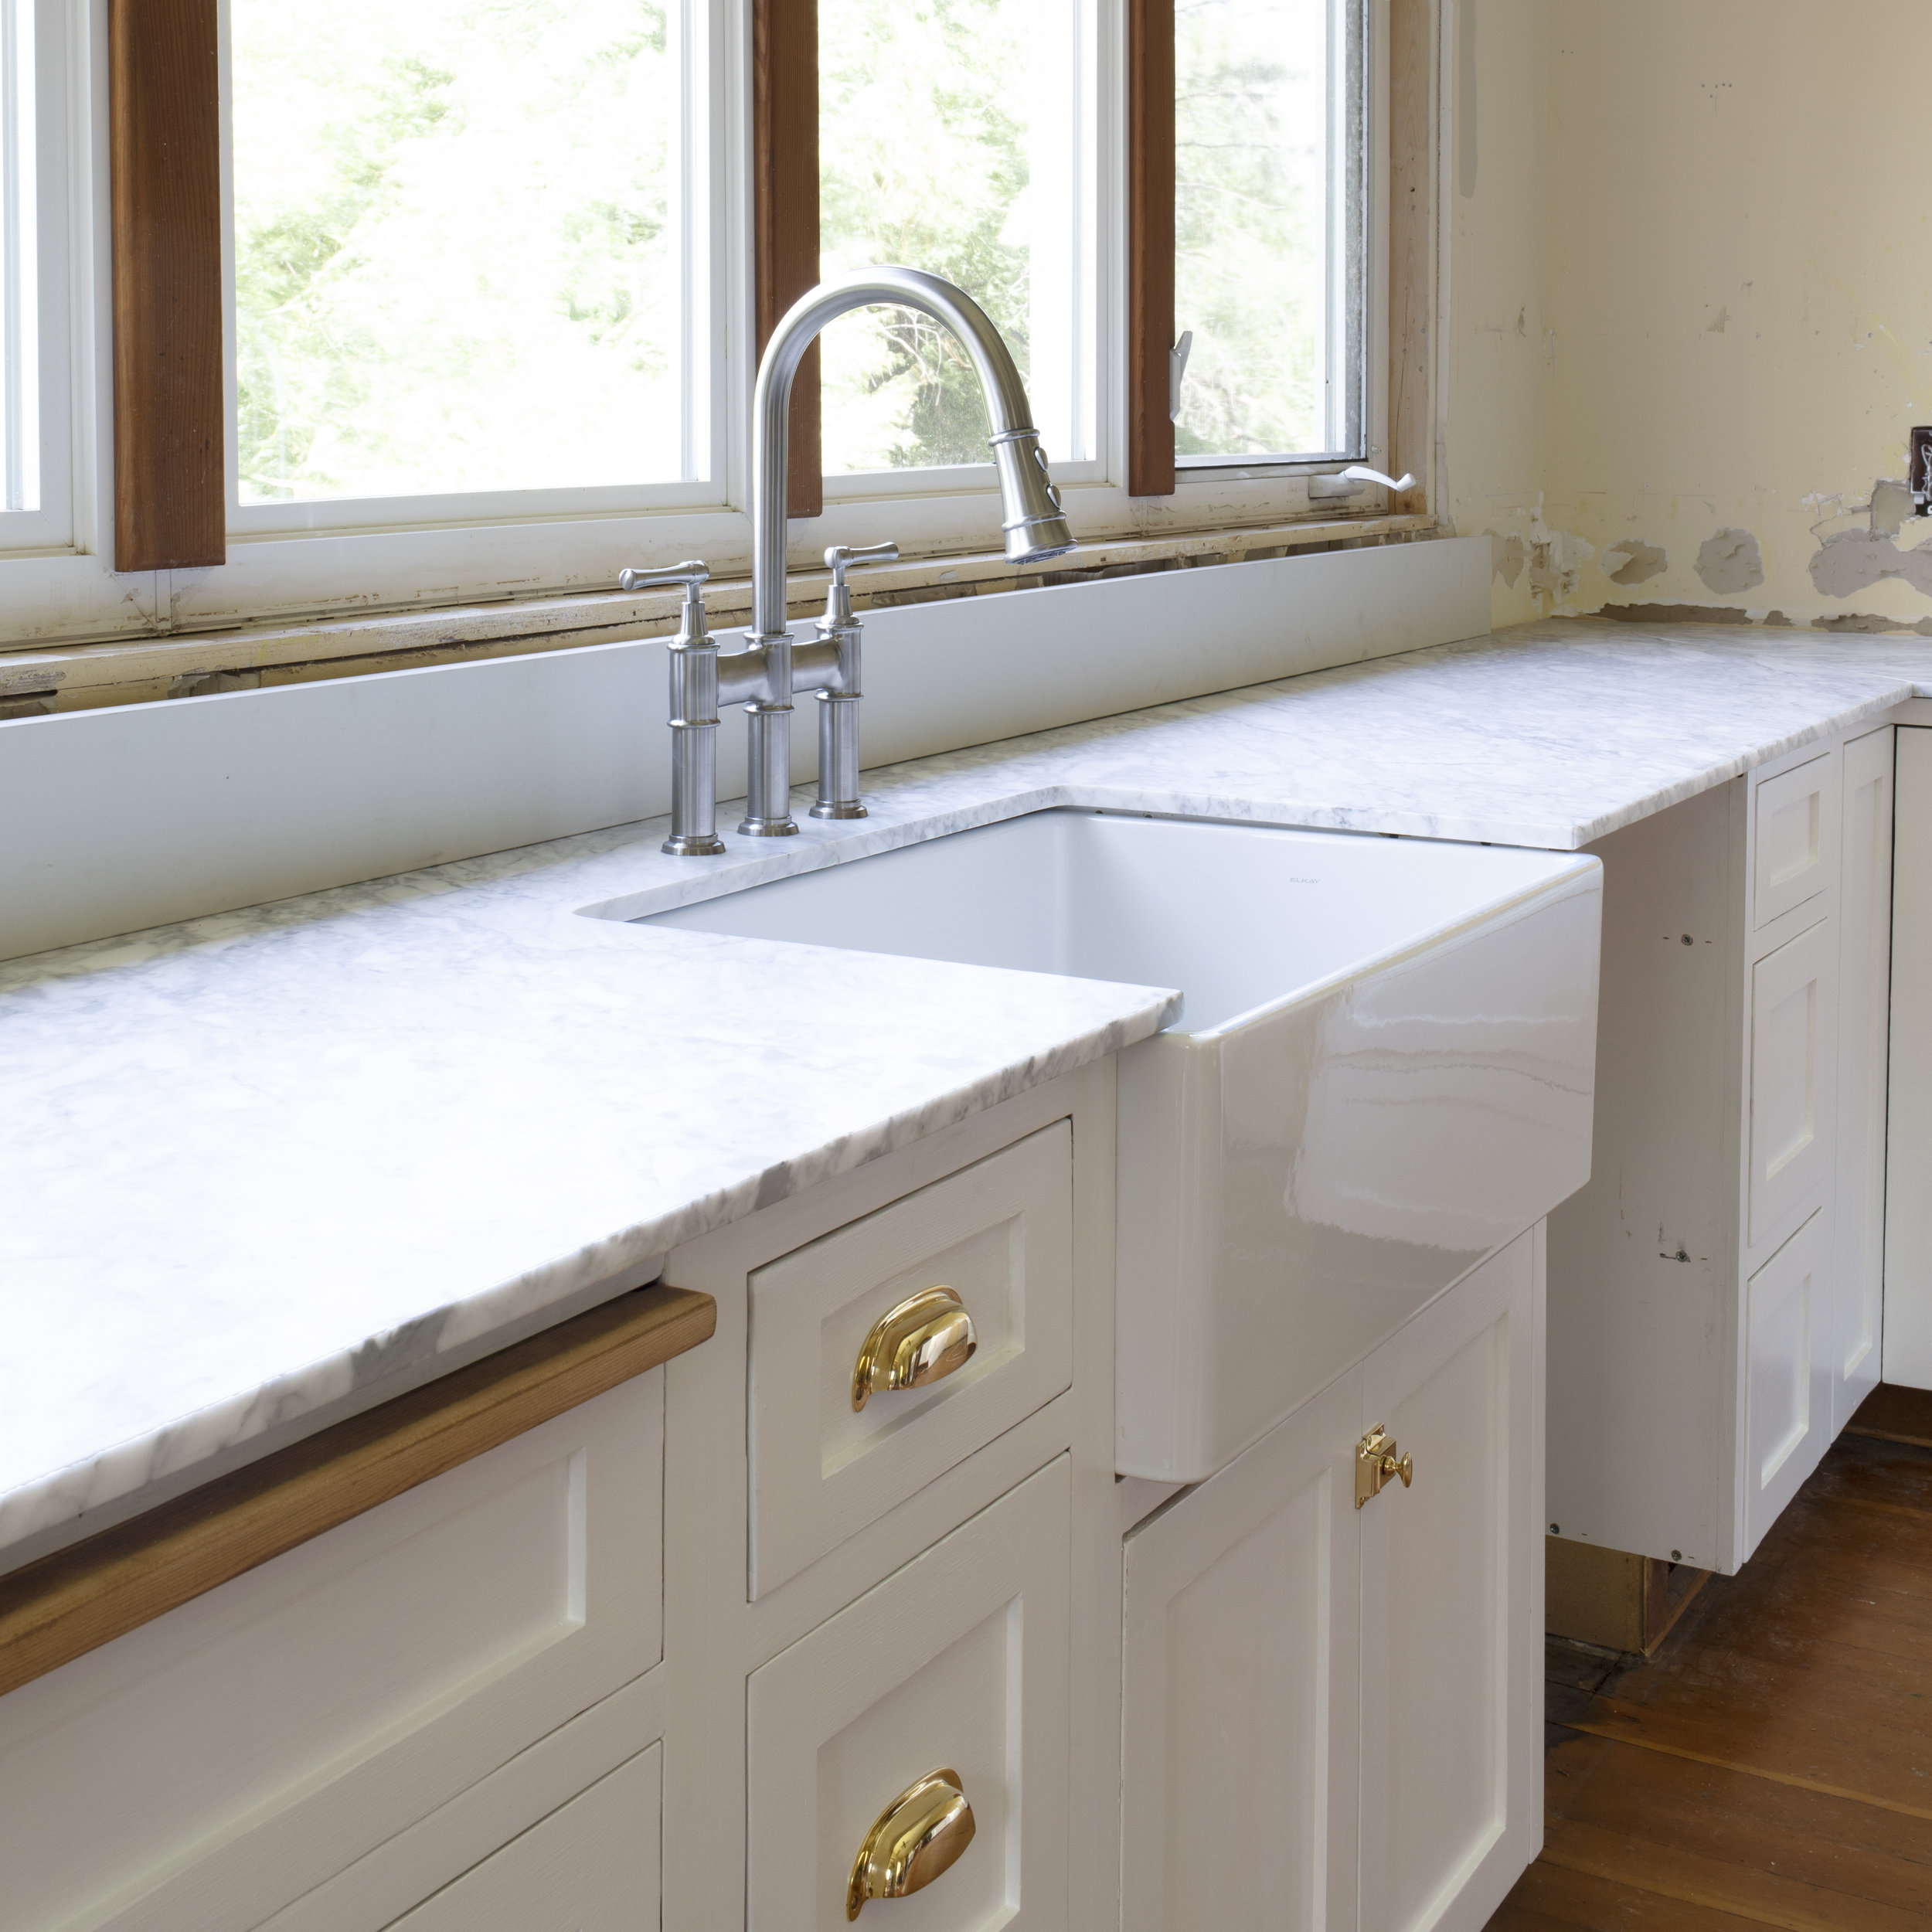 The Grit and Polish - Farmhouse Kitchen Update Countertops.jpg